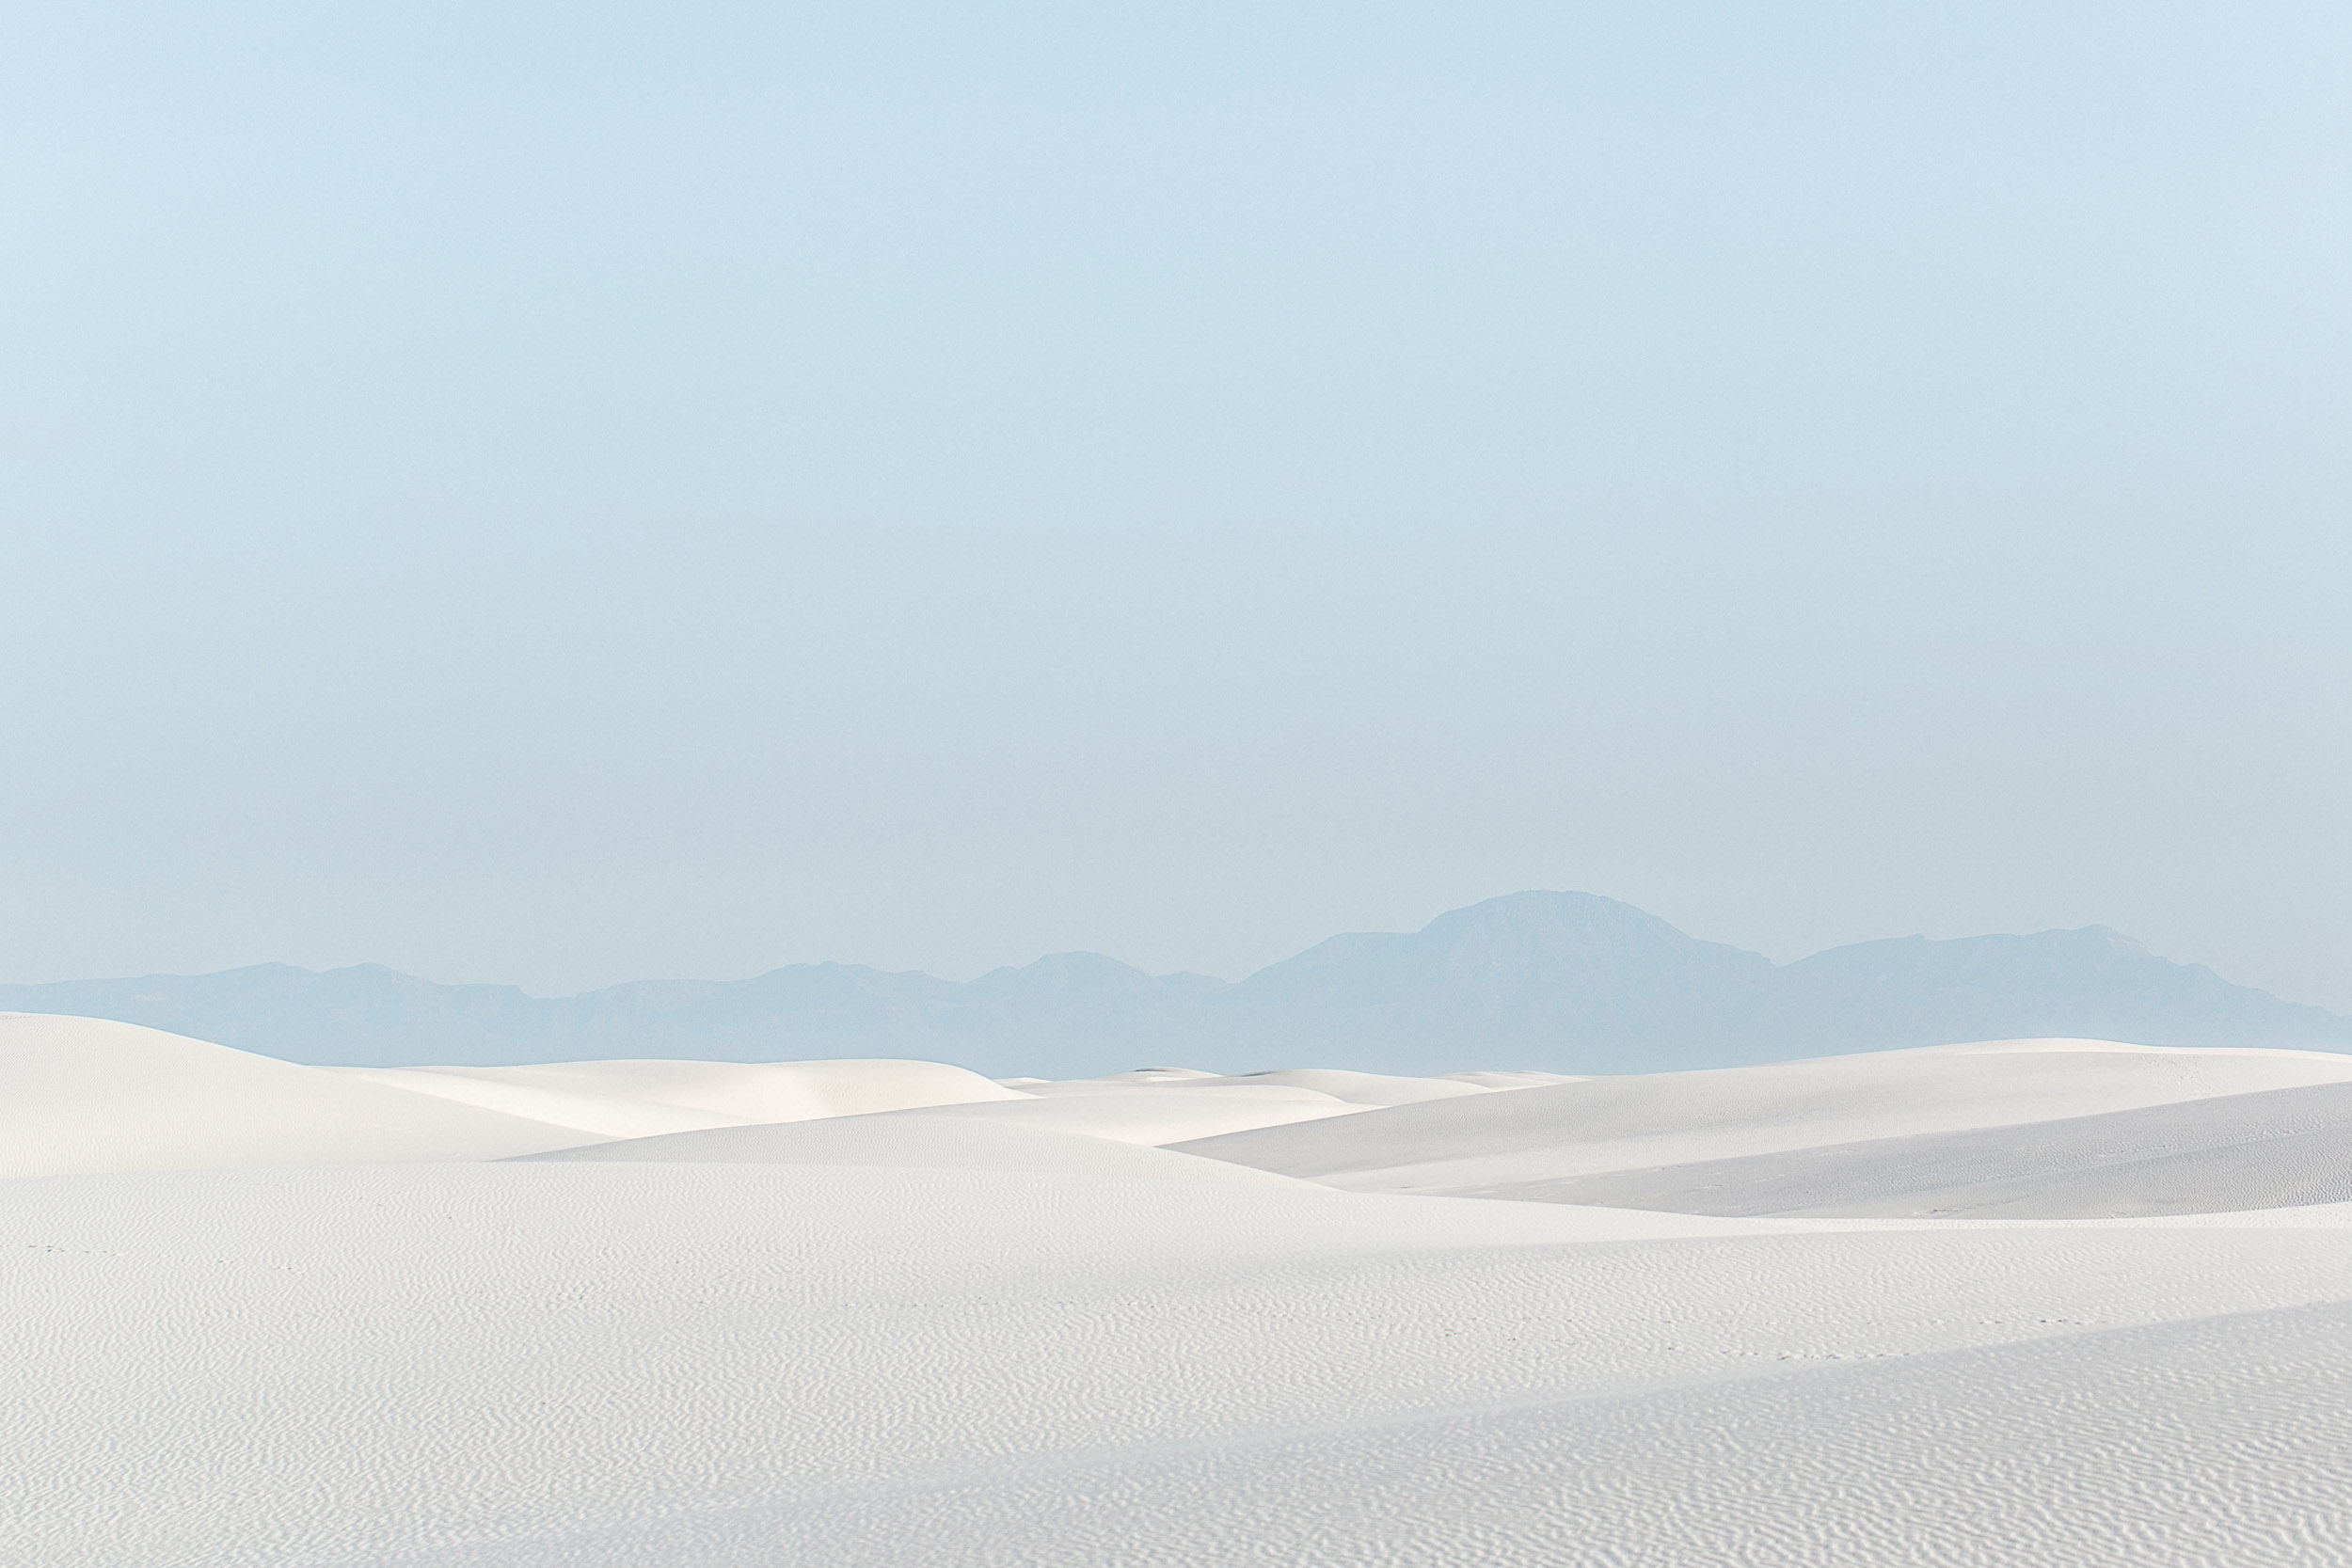 white-sands-for-gap-photo-by-rich-stapleton